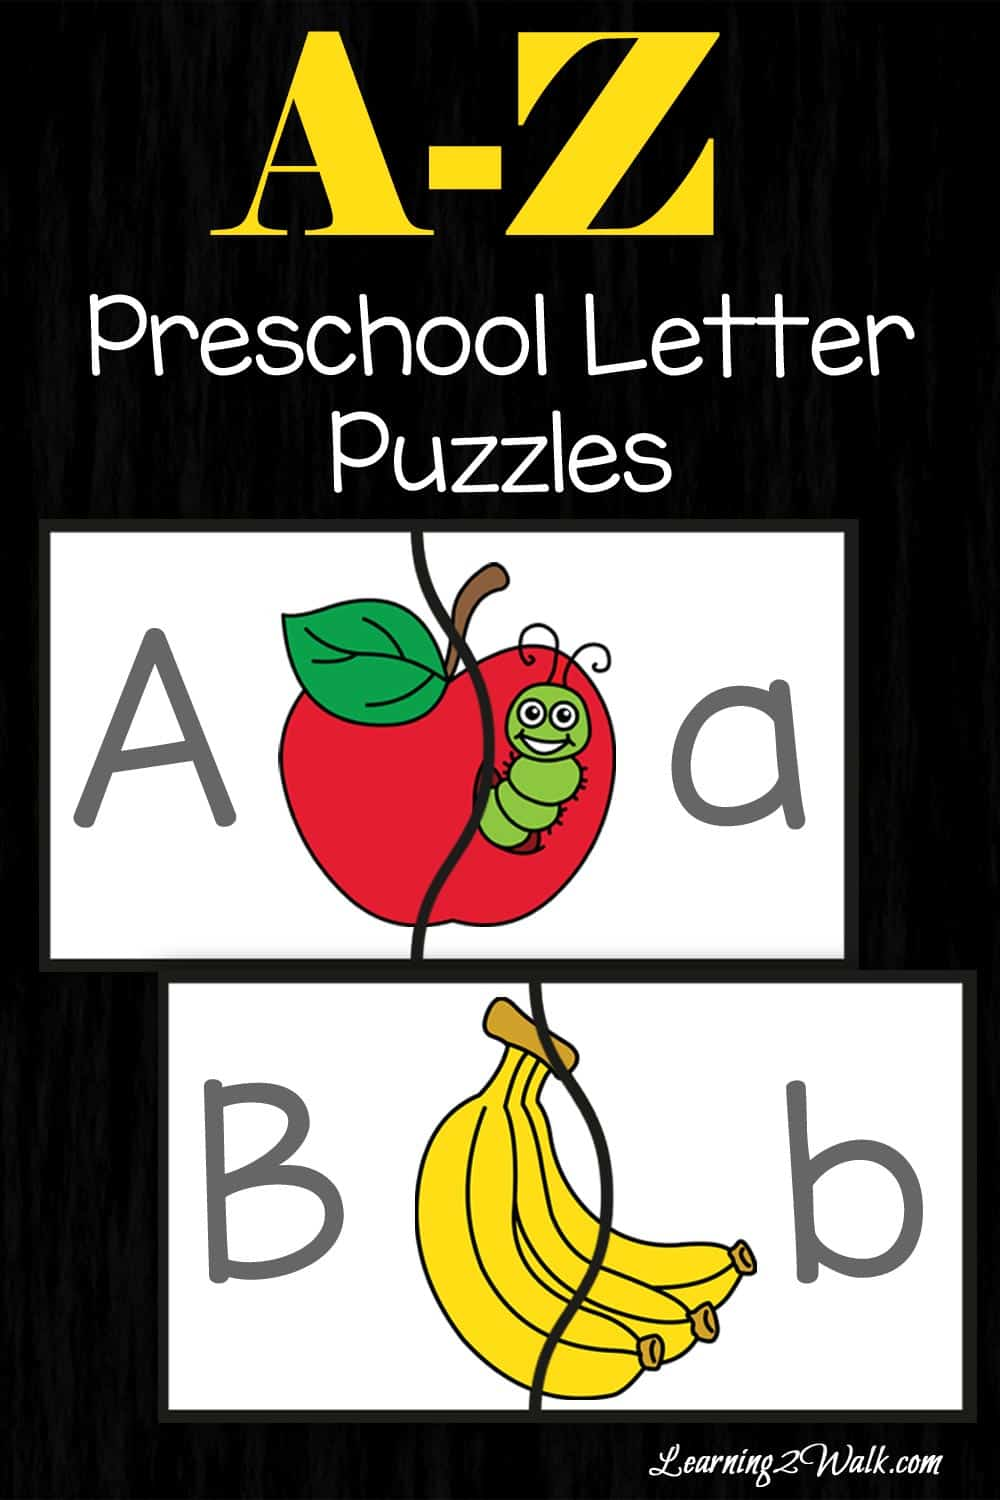 These preschool letter puzzles are just what my son needed to work on his alphabet recognition as well as a few fine motor skills